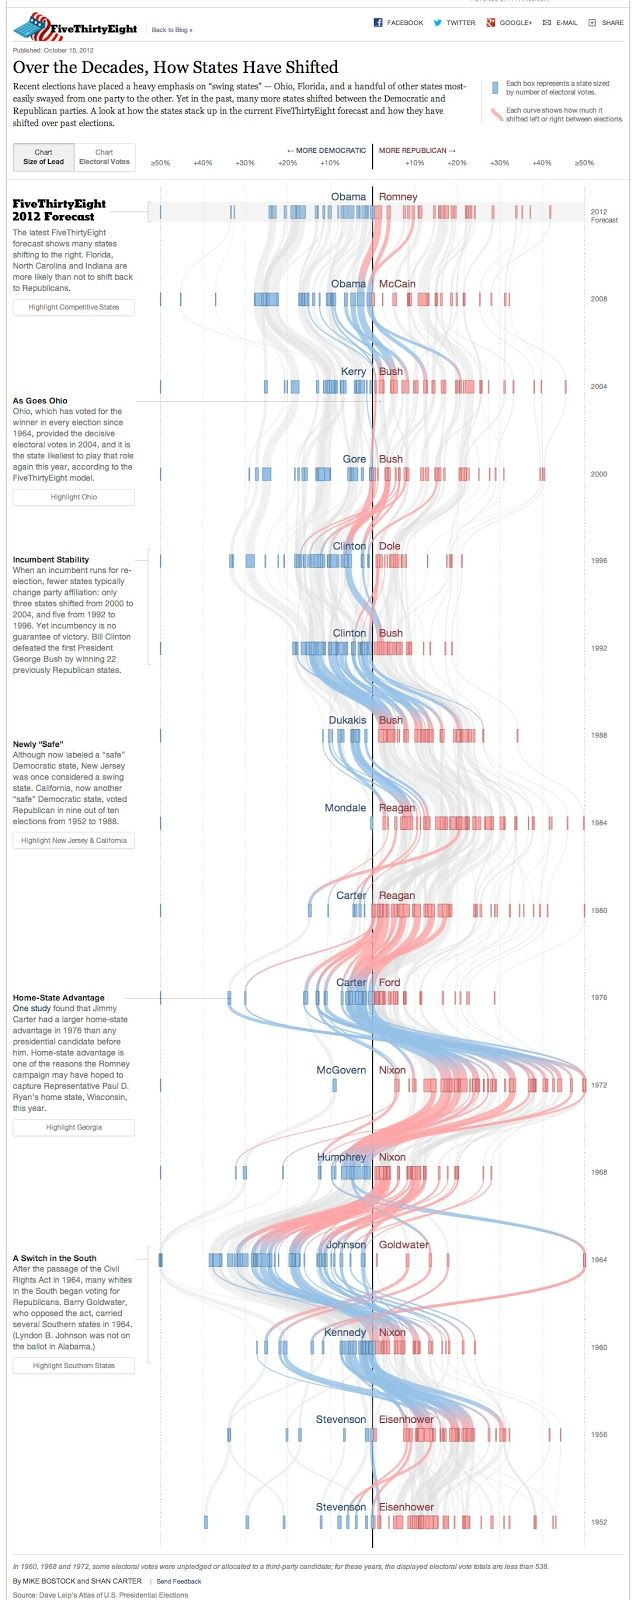 It tells a story over time and gives you space to interpret  Citation:Cairo, A. (1970, January 01). Visualizing political shifts: Data and interaction design. Retrieved January 15, 2017, from http://www.thefunctionalart.com/2012/10/visualizing-political-shifts-few.html